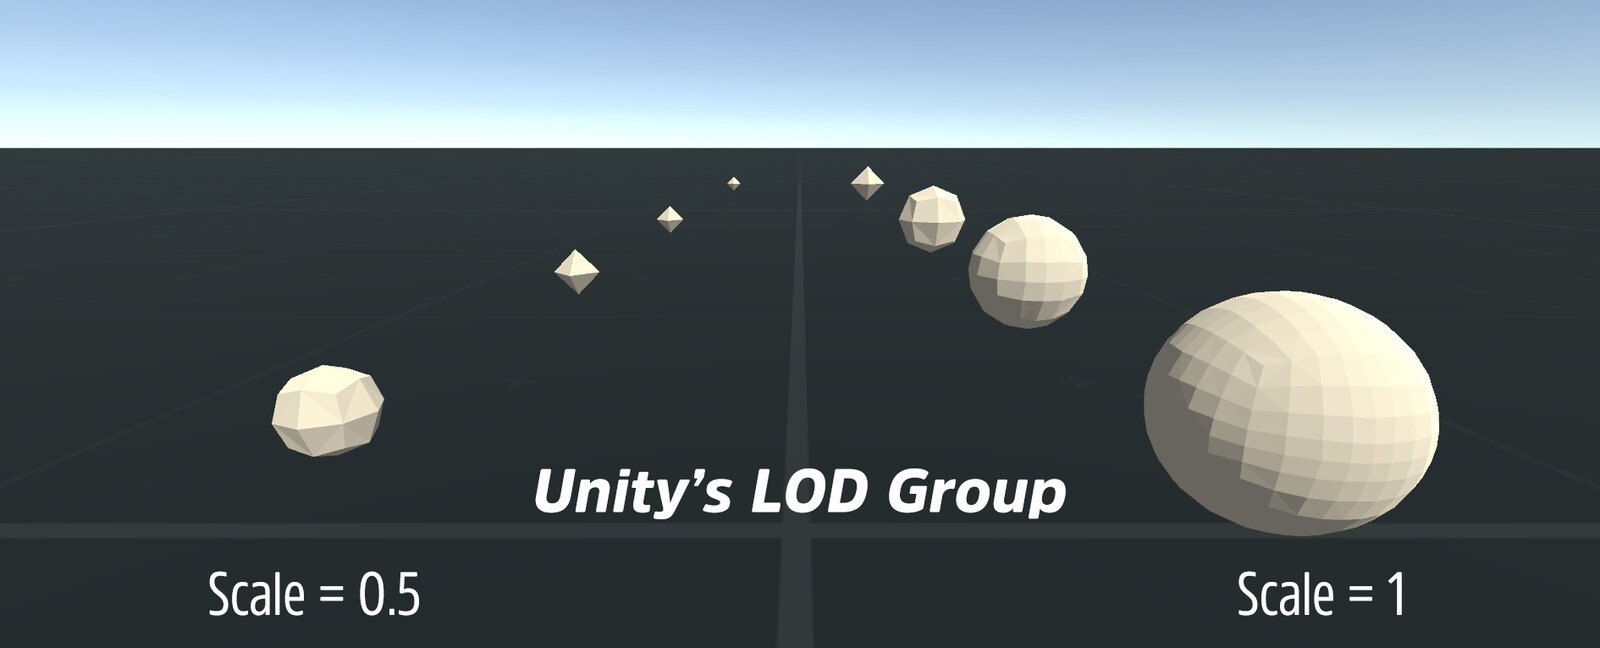 Unity's LOD system is based on screen height. So two duplicate objects that are the same distance from the camera but different scales will be a different LOD.